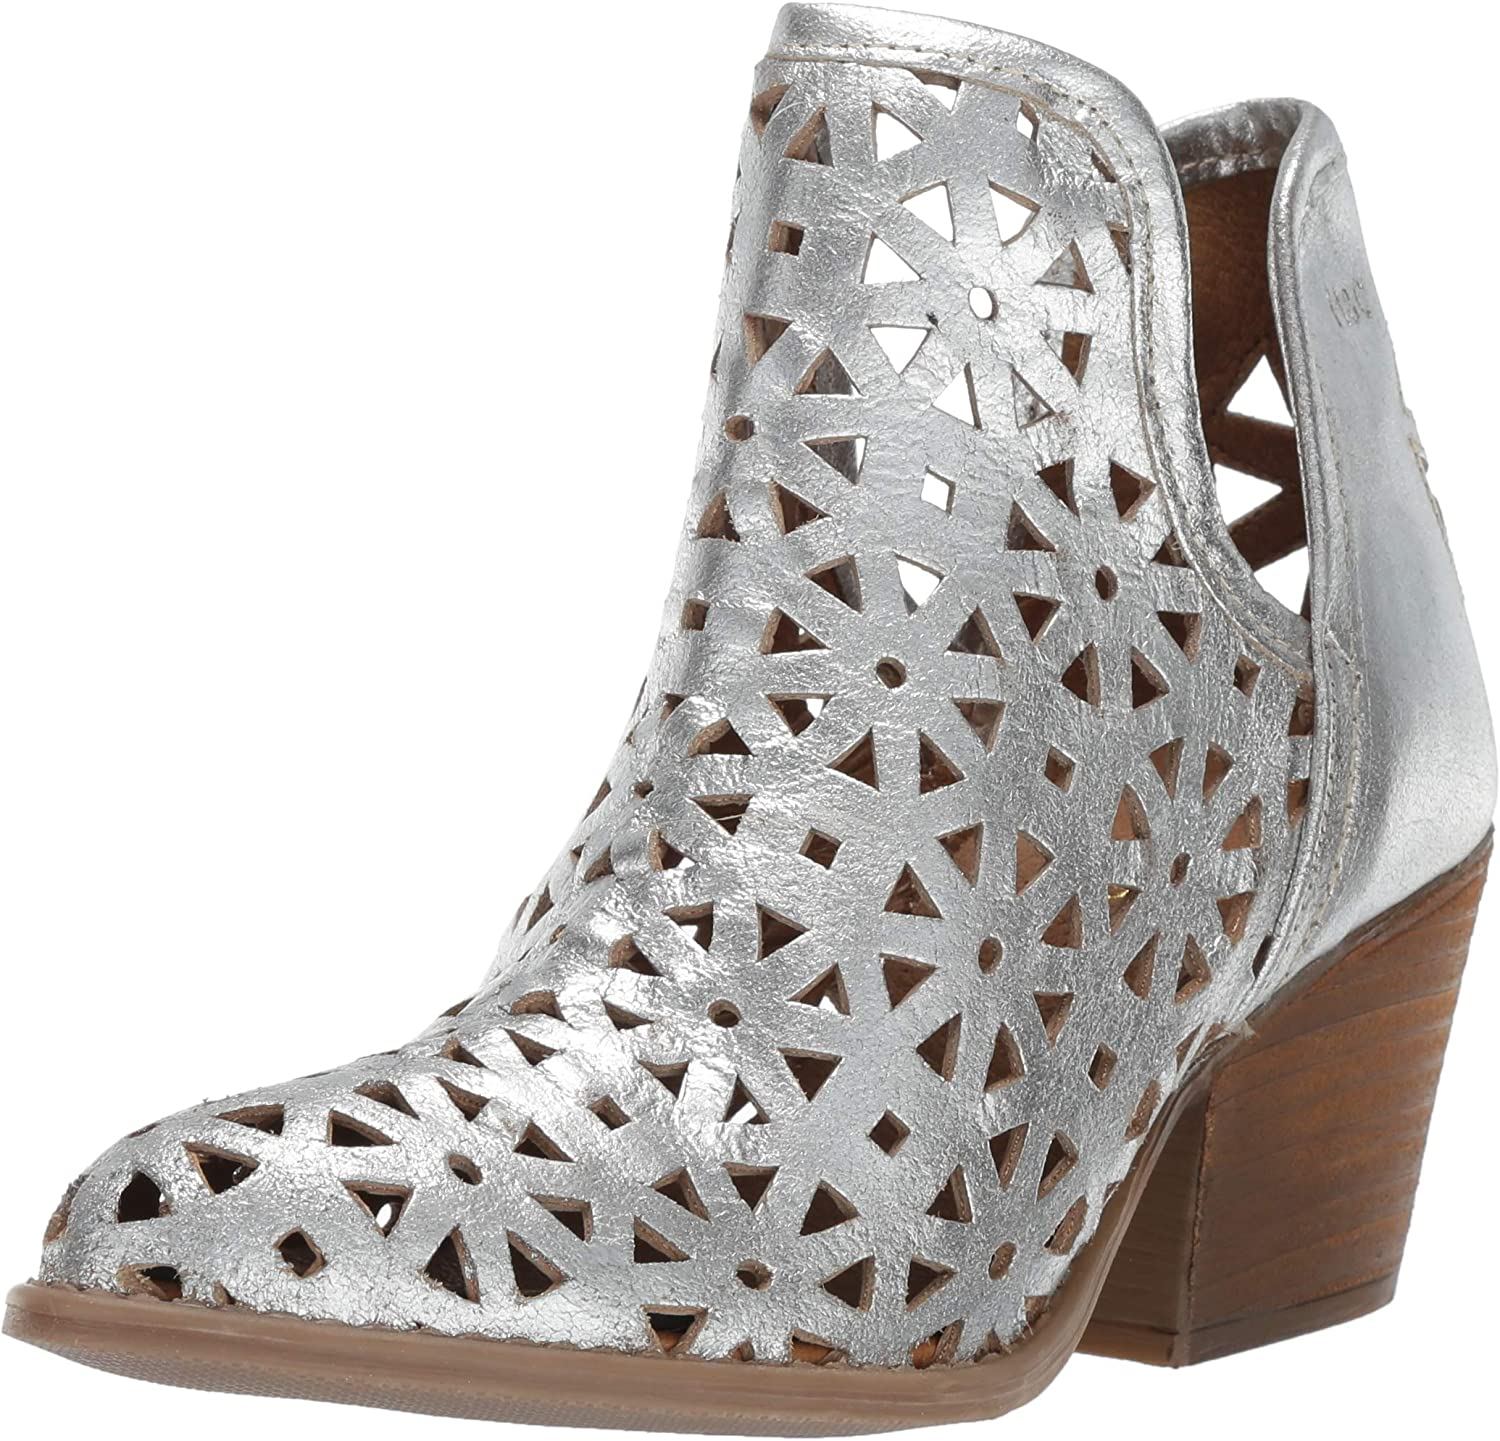 Coolway Athena Women's High Heel Ankle Boots